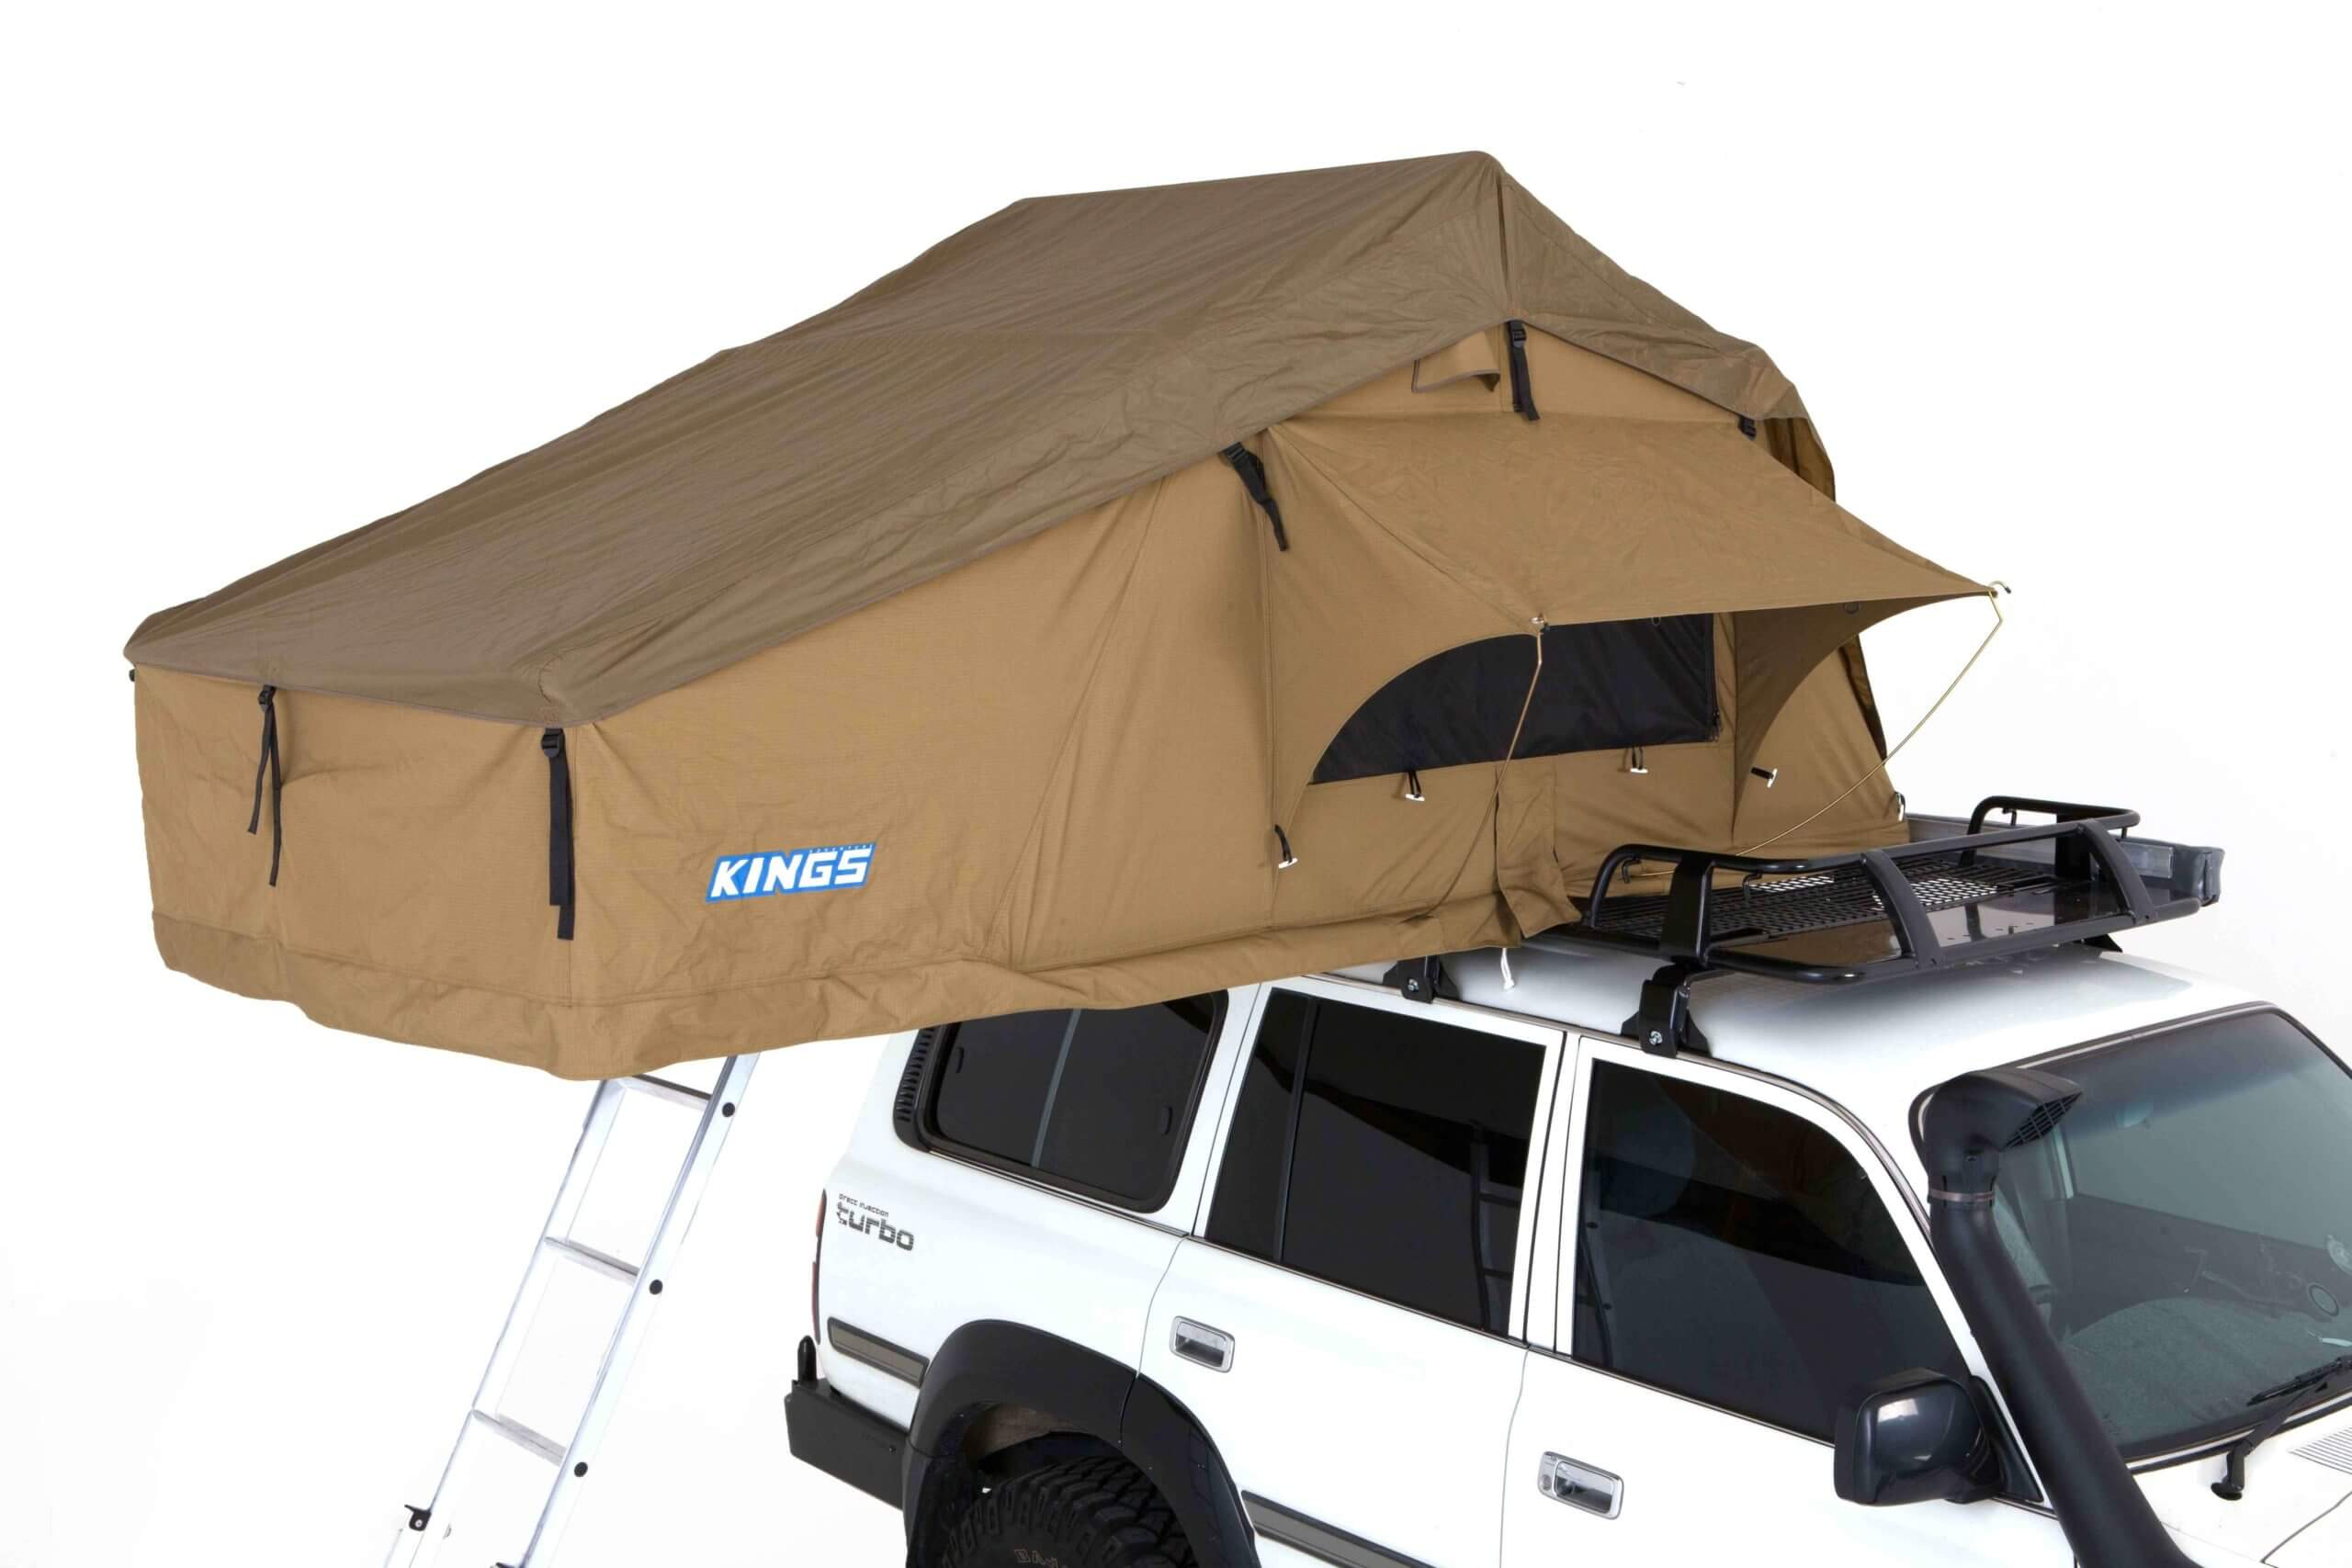 Adventure Kings Rooftop Tent Review